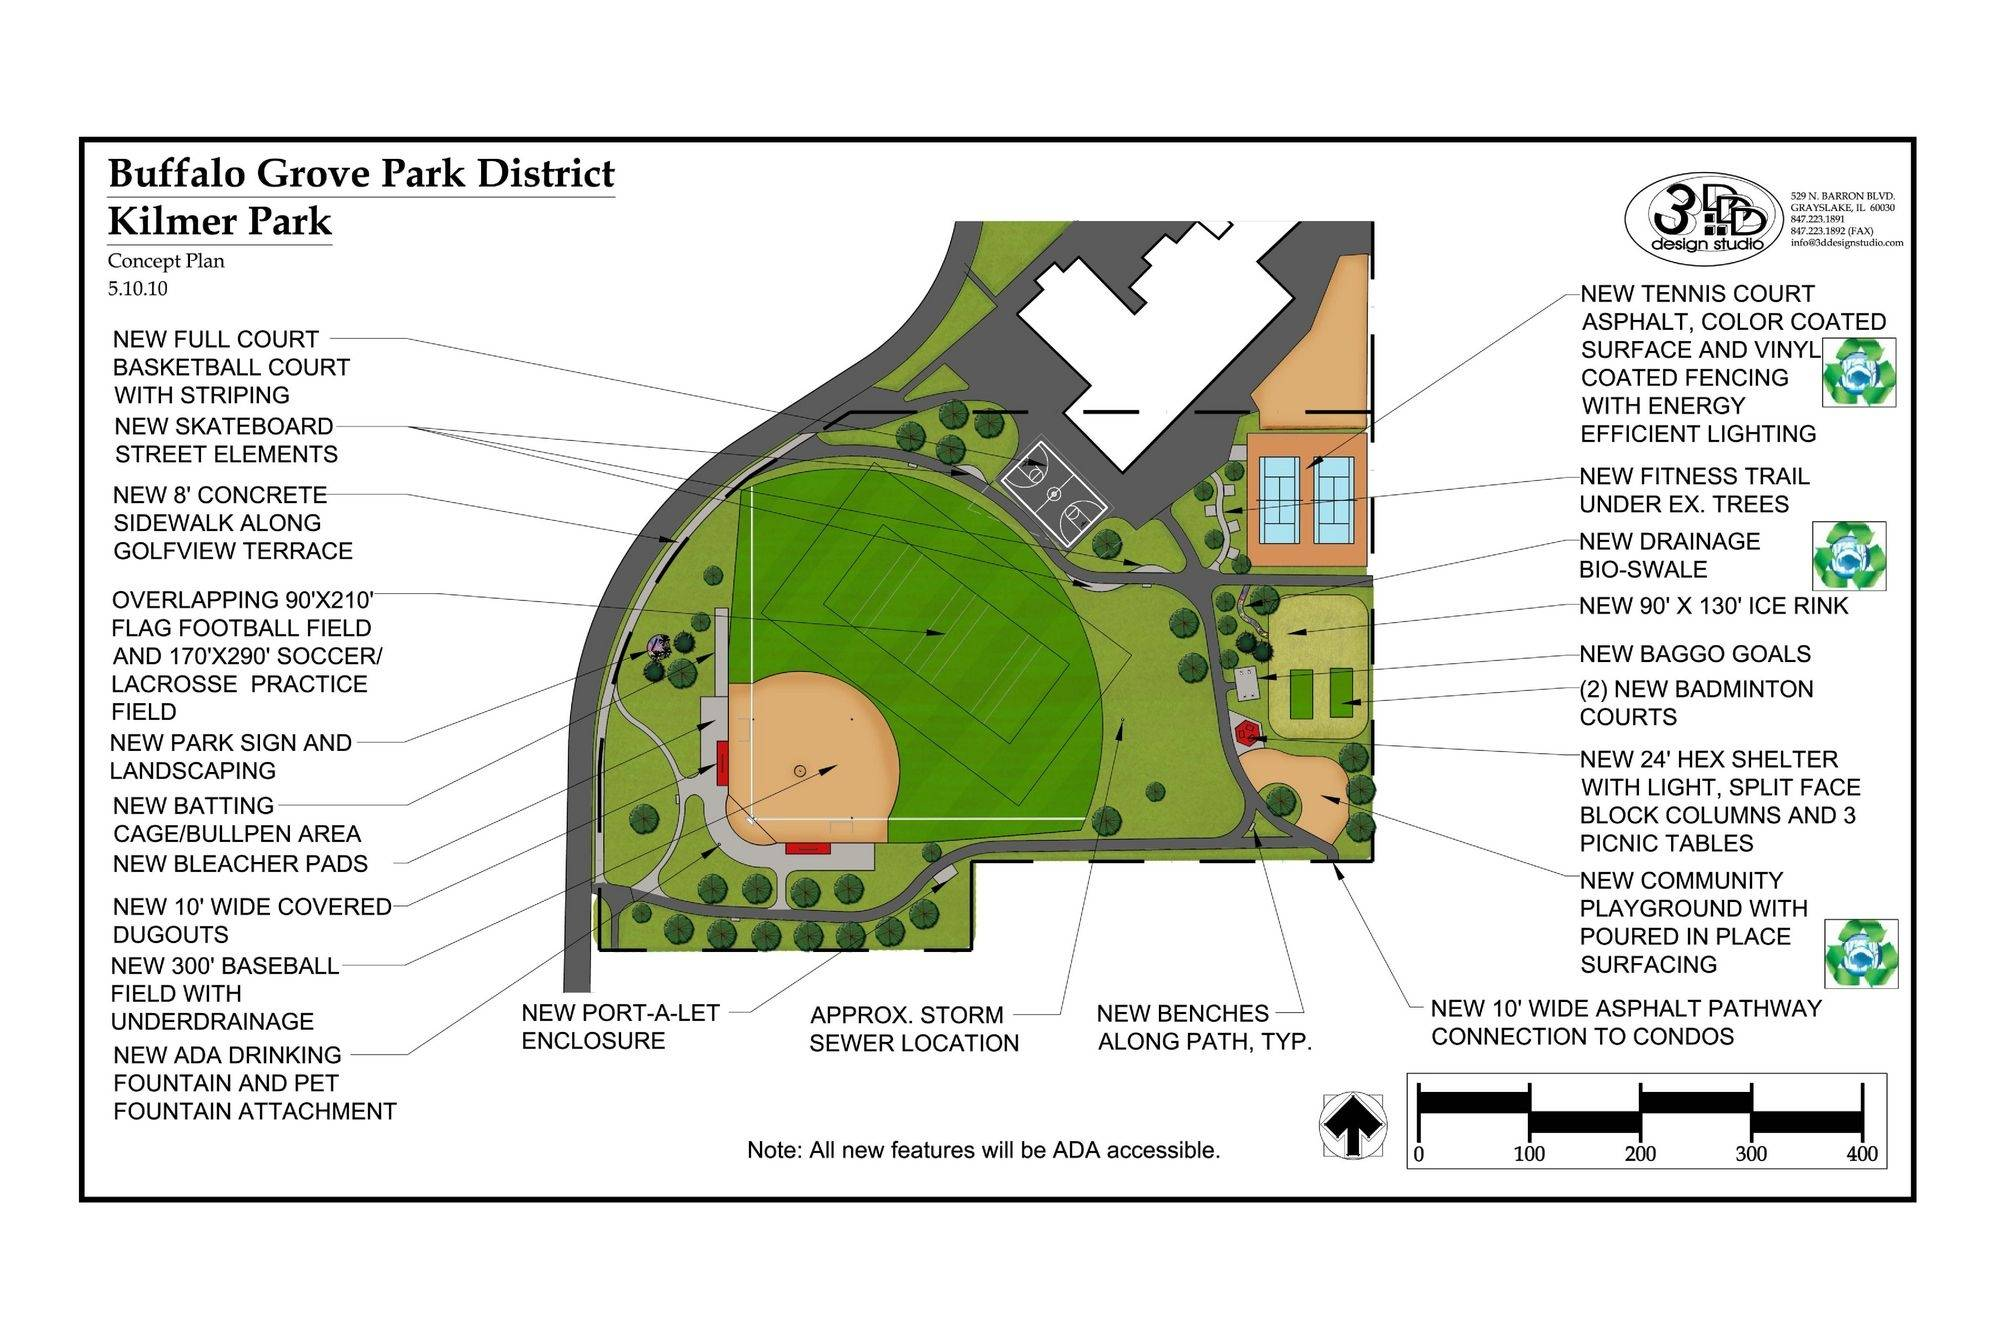 This is a sketch of some of the proposed improvements at Kilmer Park in Buffalo Grove.